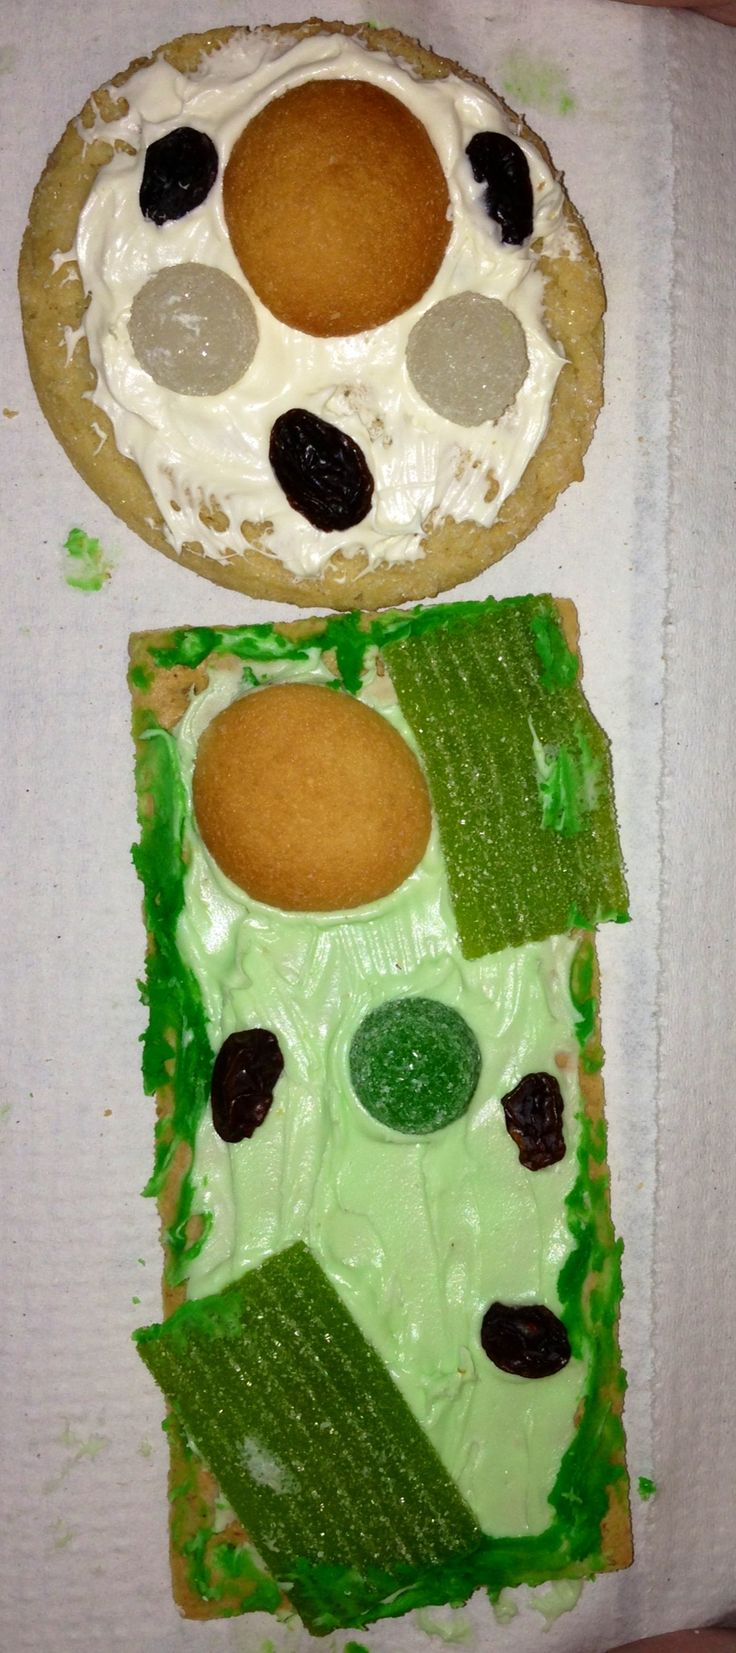 Create plant & animal cells with cookies, graham crackers, mini Nilla wafers, raisins, frosting, gum drops, & green candy.  Mrs. Diamond's 5th grade students LOVED this!!!